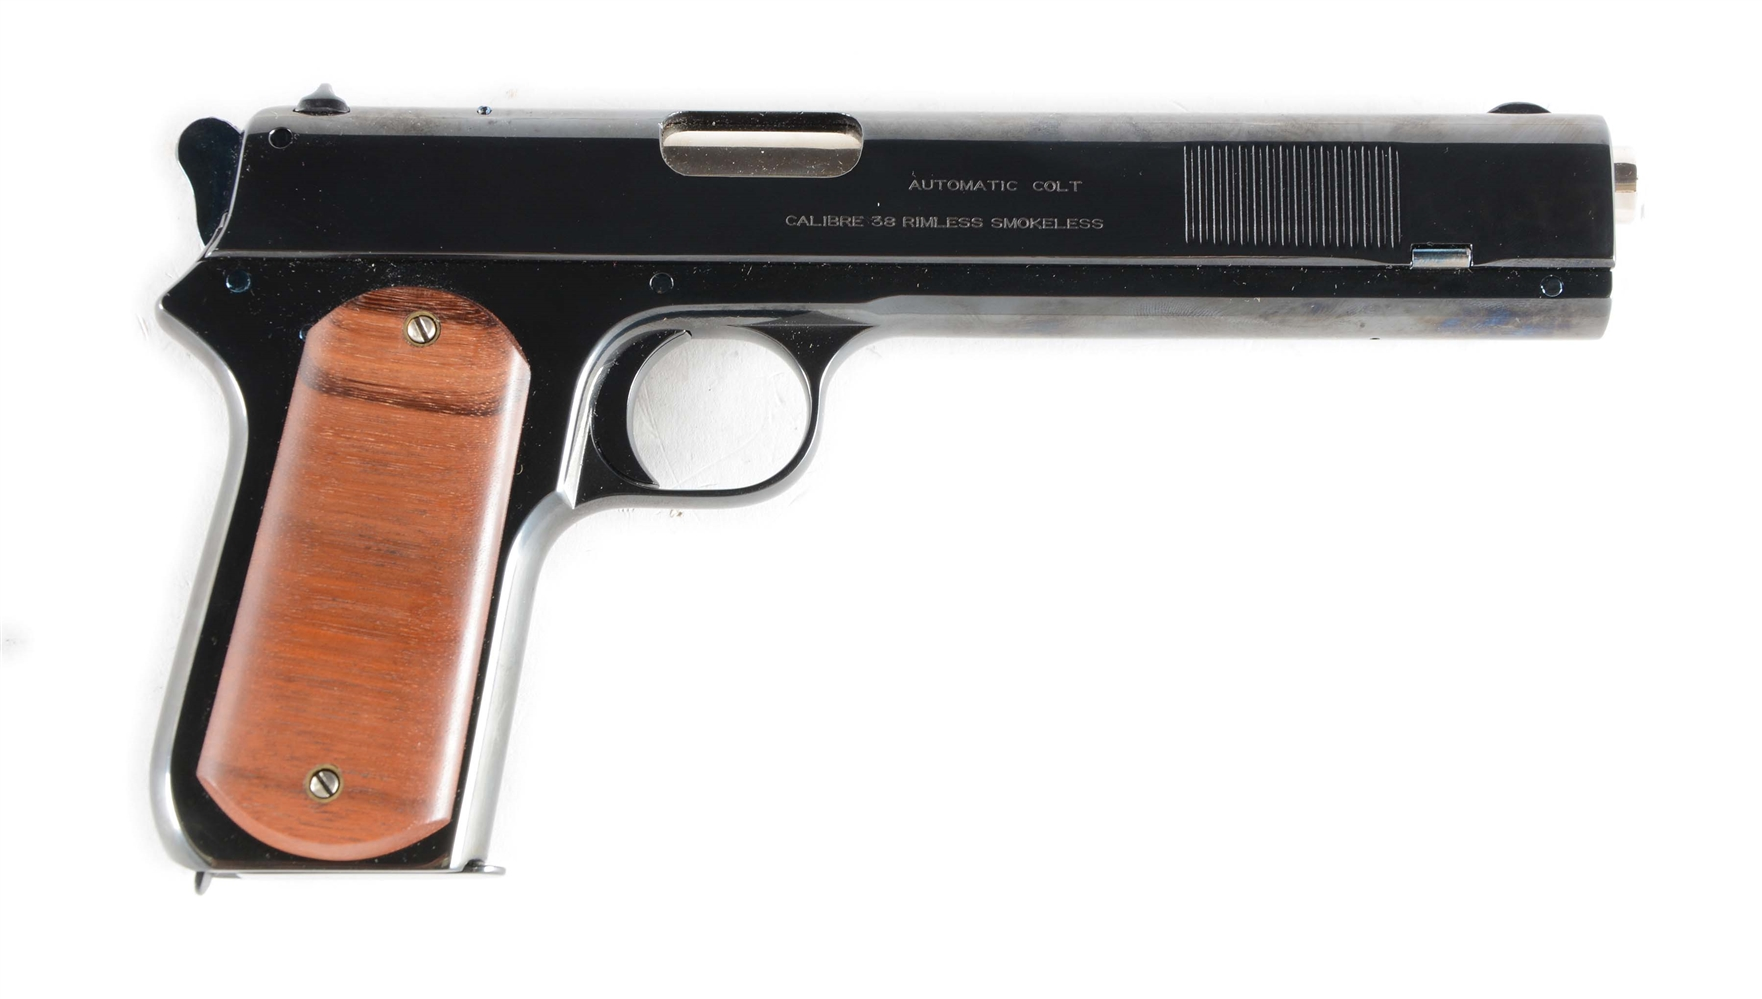 (C) AS NEW COLT 1902 SPORTING MODEL SEMI AUTOMATIC PISTOL (1903).